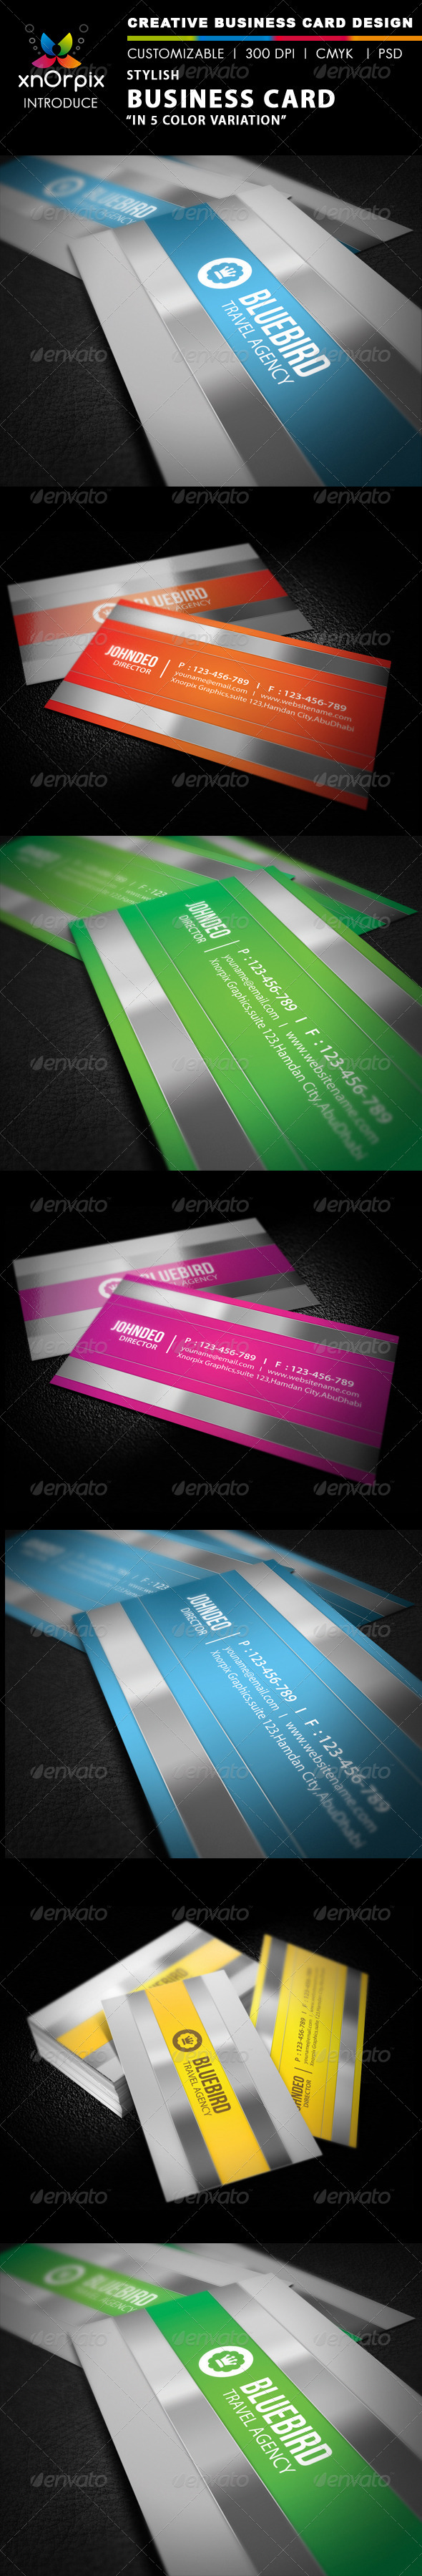 Stylish Business Card - Corporate Business Cards